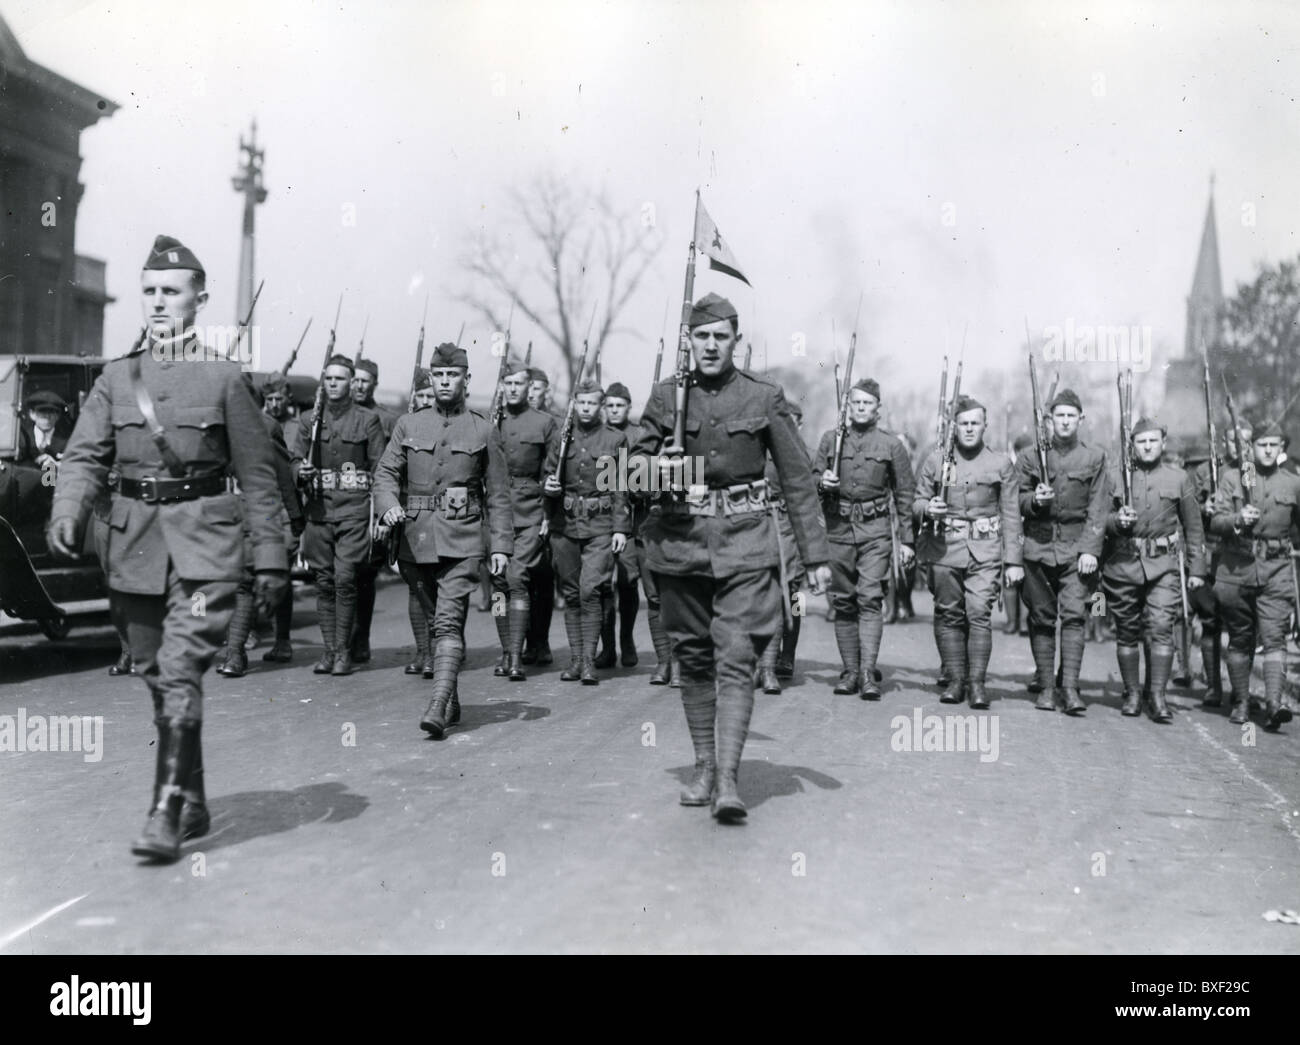 The United States Army 32nd Division Red Arrow marches in Detroit during WWI homecoming parade May 12, 1919 soldiers - Stock Image